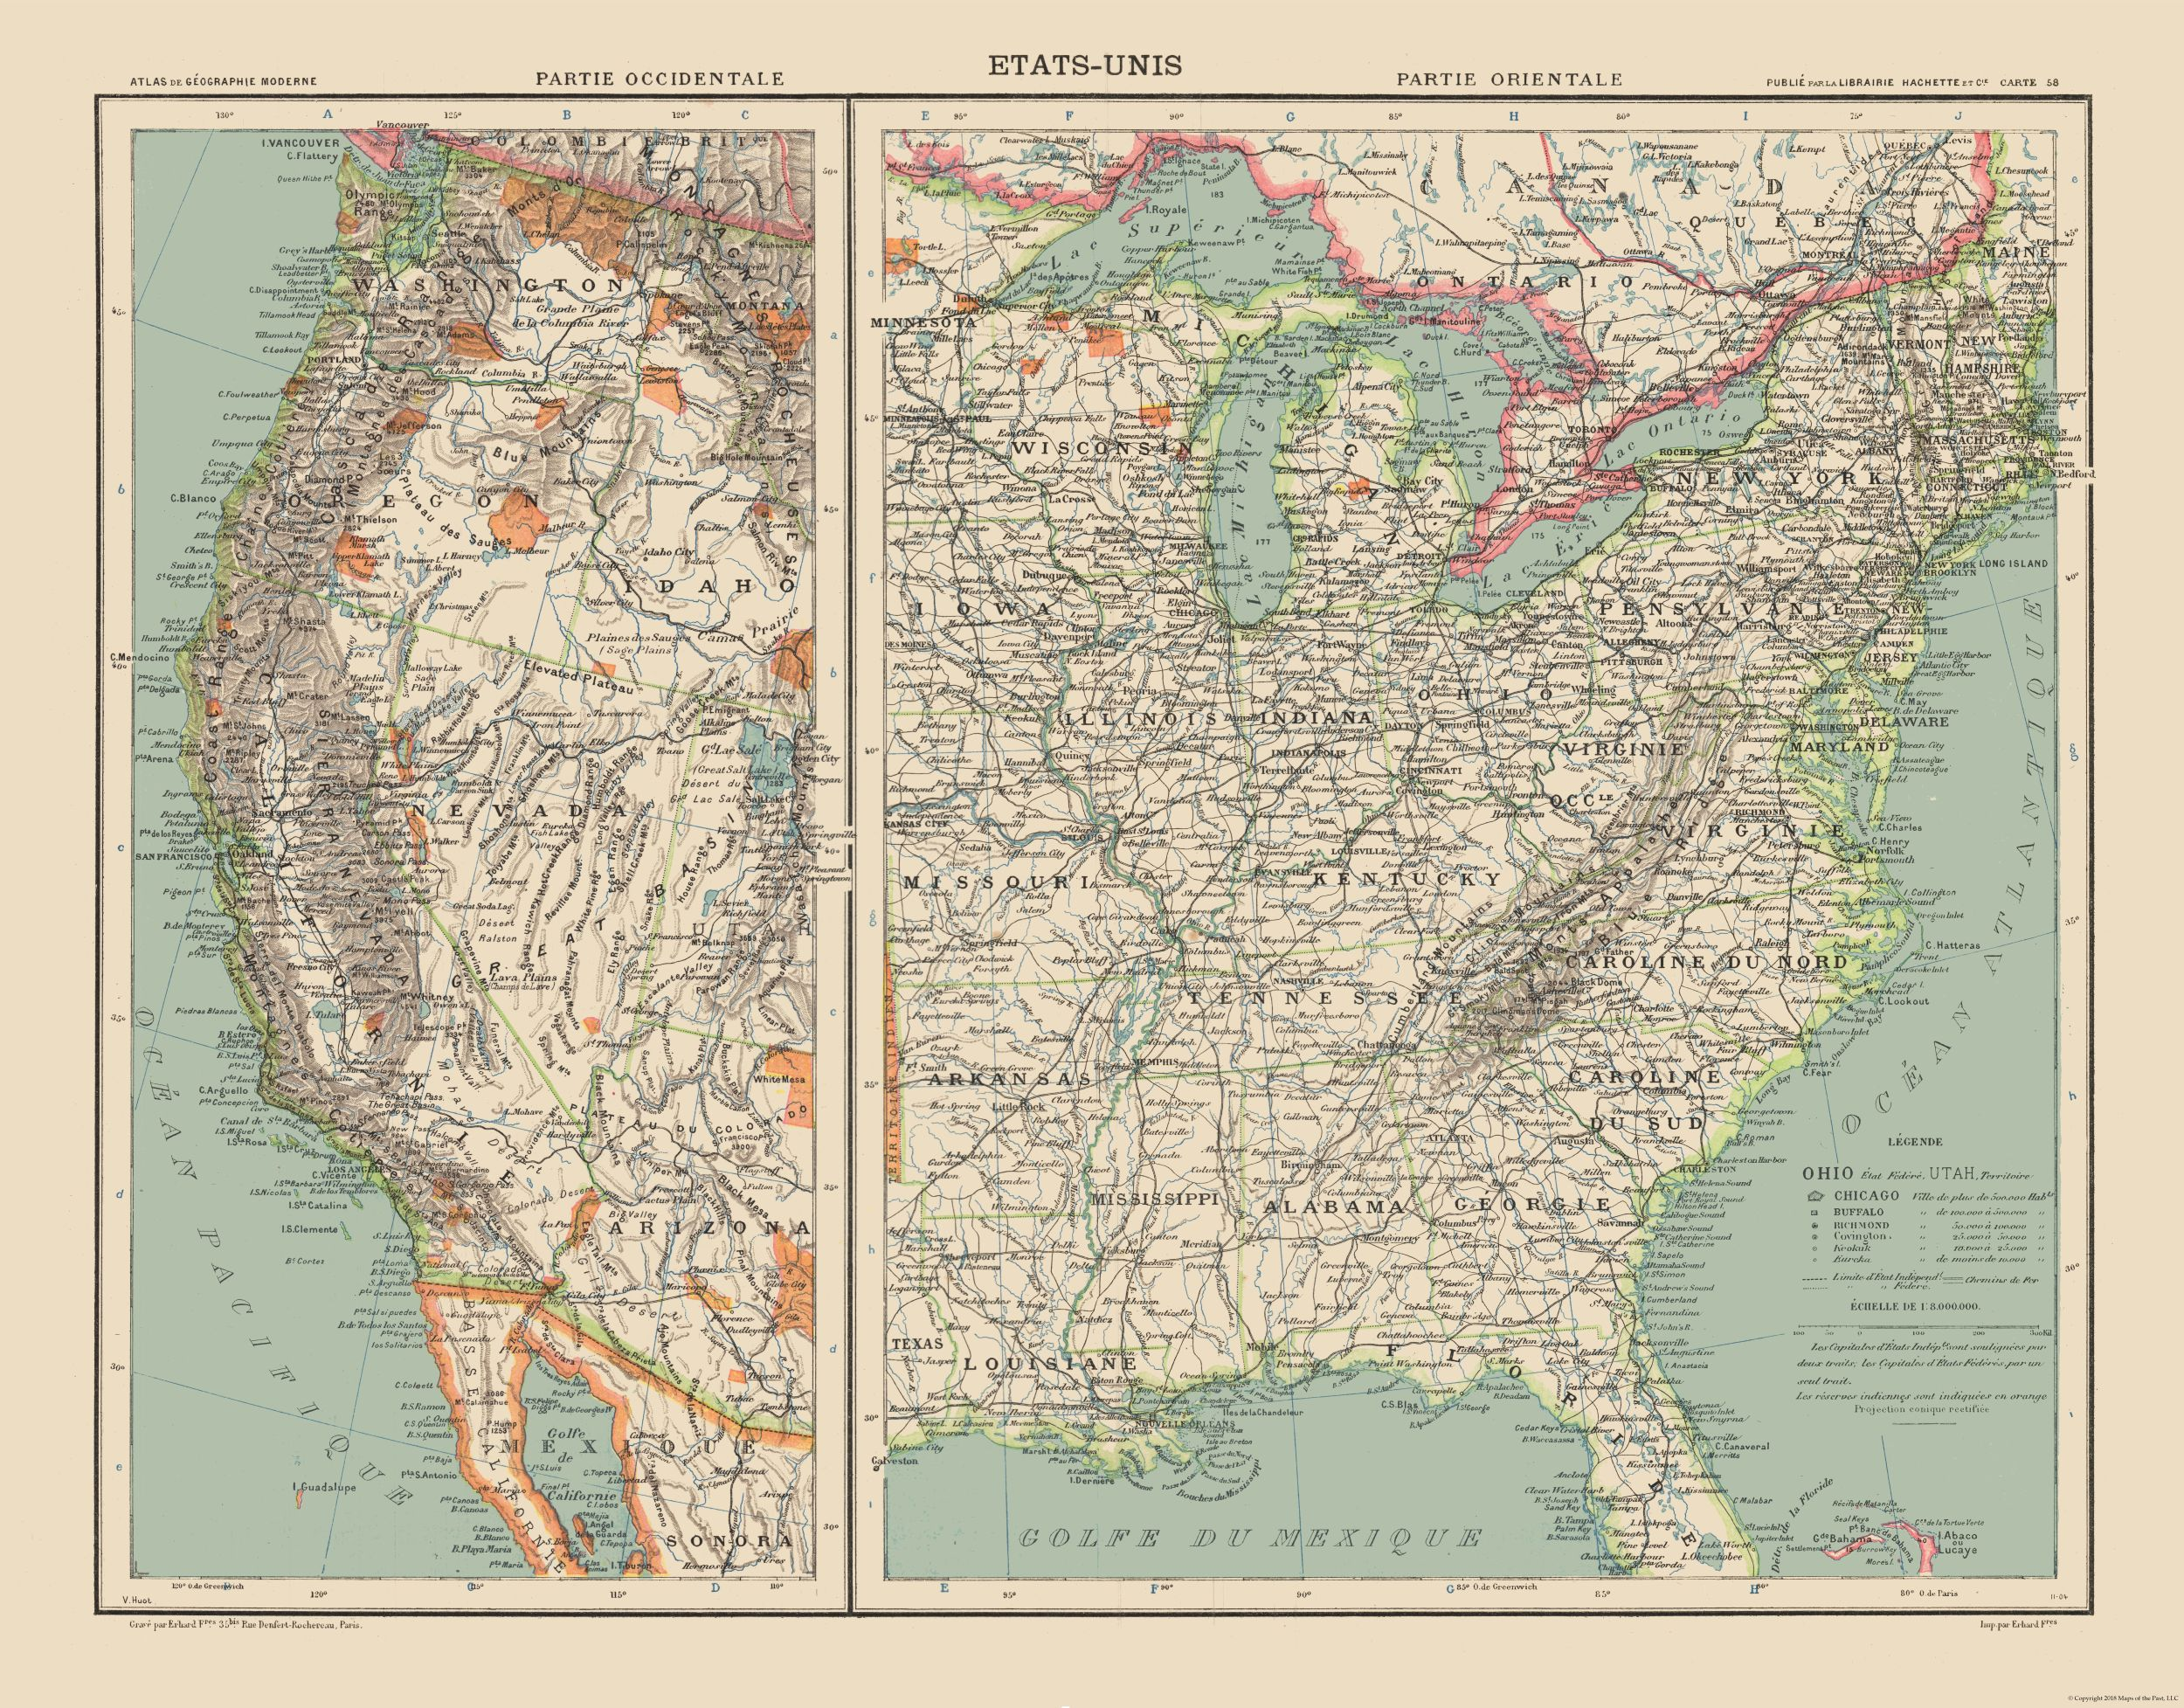 Old State Maps West And East United States Schrader 1908 2941 - Us-map-1908